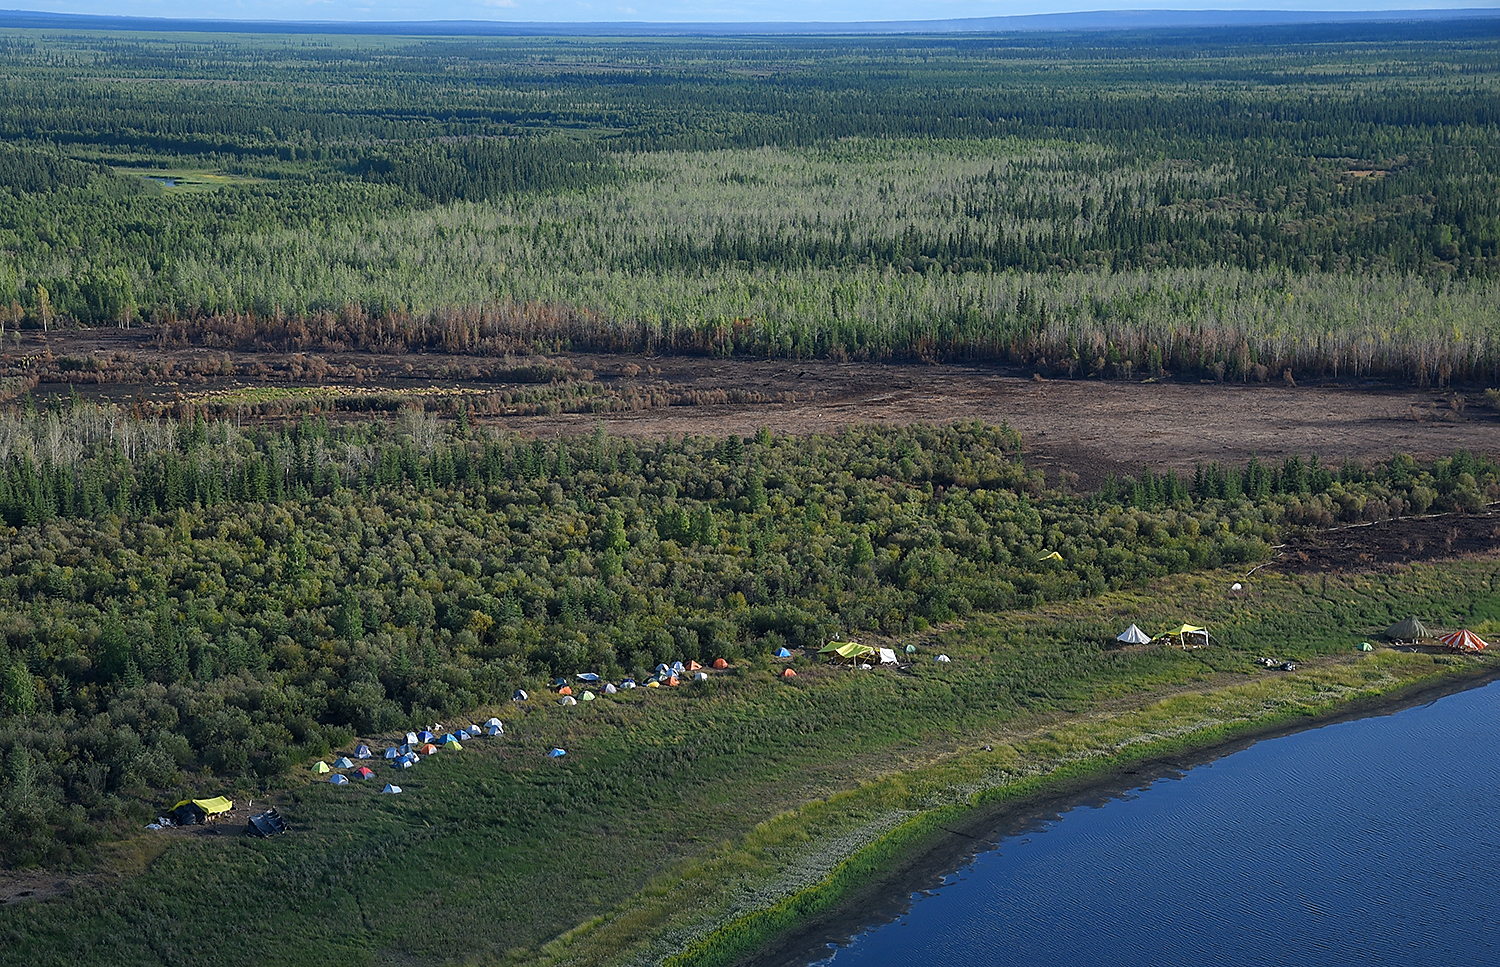 Firefighters' spike camp is set up near the Small Timber Fire (#687) of the Chalkyitsik Complex on Sunday, Aug. 4, 2019. The 34-acre fire is holding heat in the deep layers of peat along the Draanjik River due to the extreme drought conditions the area has experienced this season. Sam Harrel